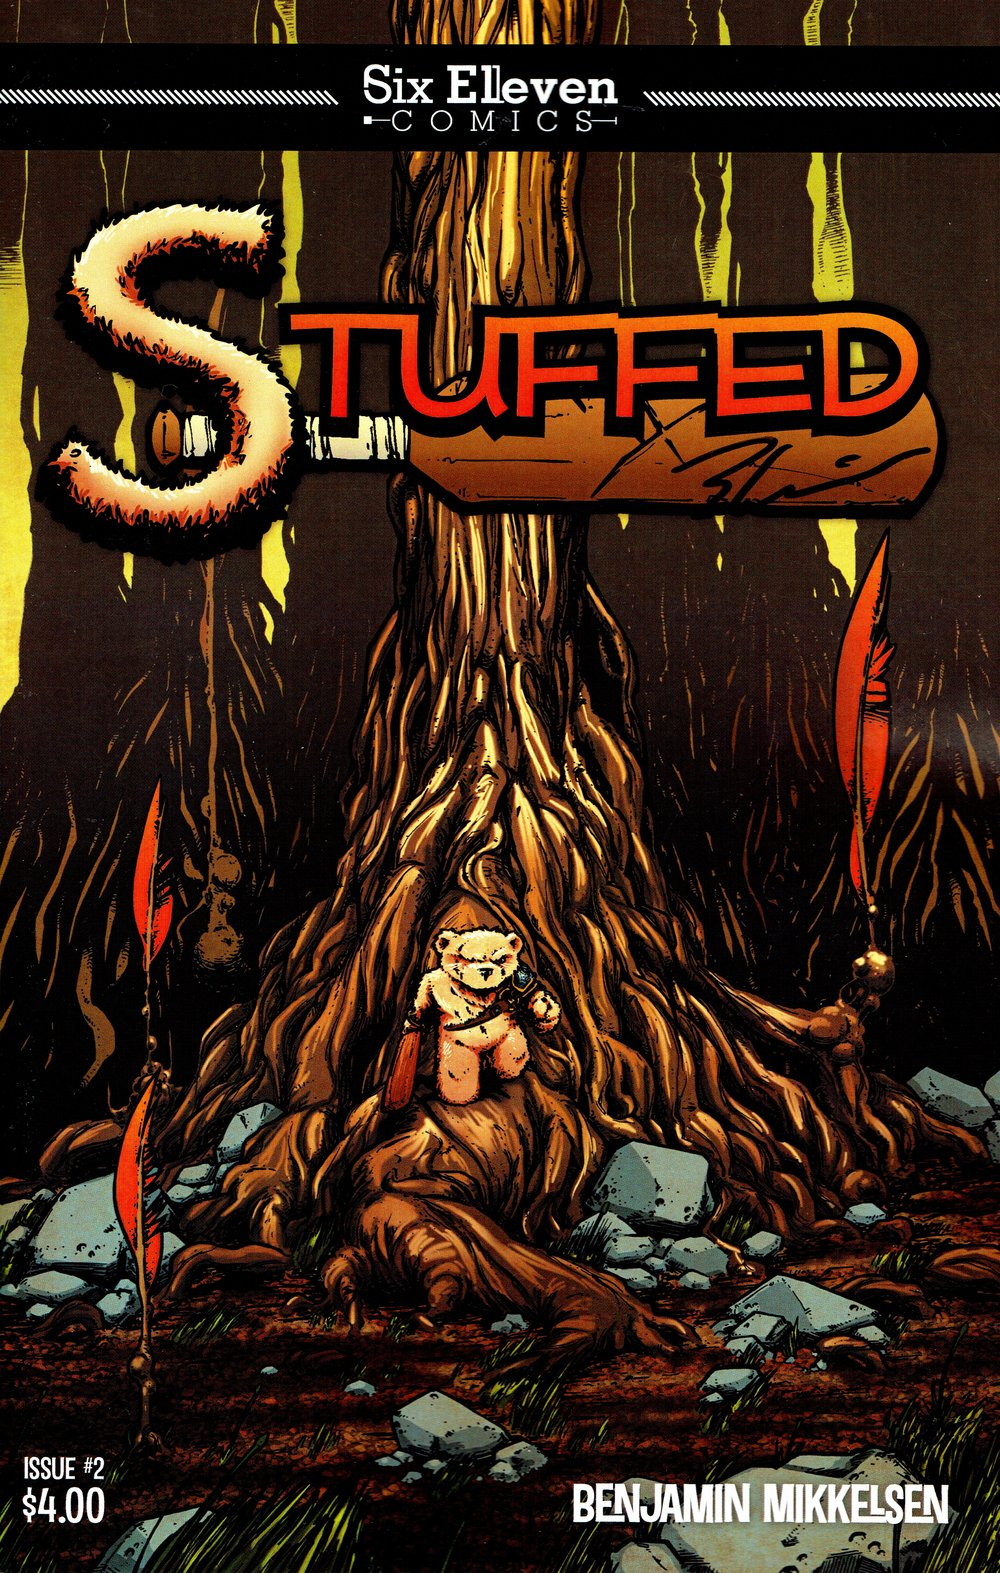 Stuffed #2 by Ben Mikkelsen.